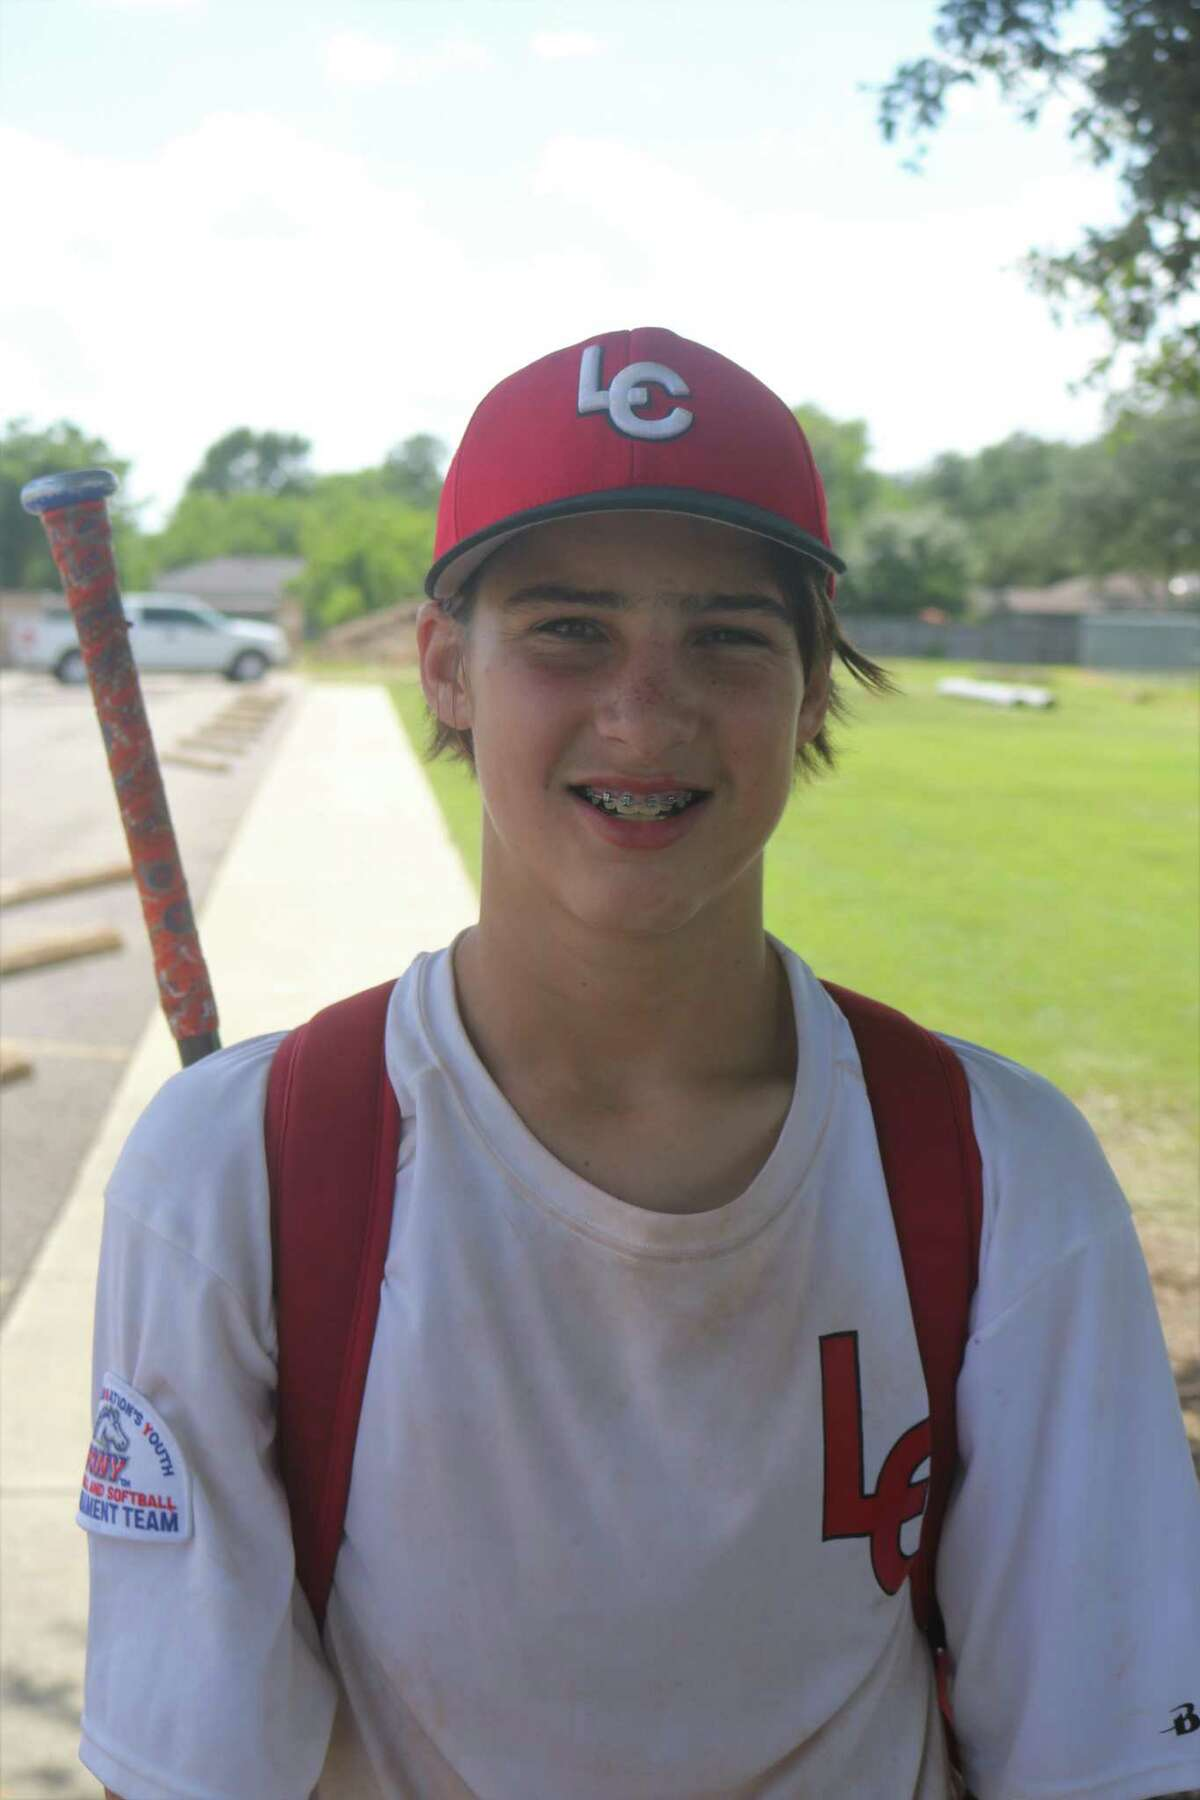 League City 13s All-Star pitcher Peyton Miller toiled in Wednesday afternoon's hot sun to the tune of 95 pitches. But he got the win and his teammates are one step closer to going to California next week.